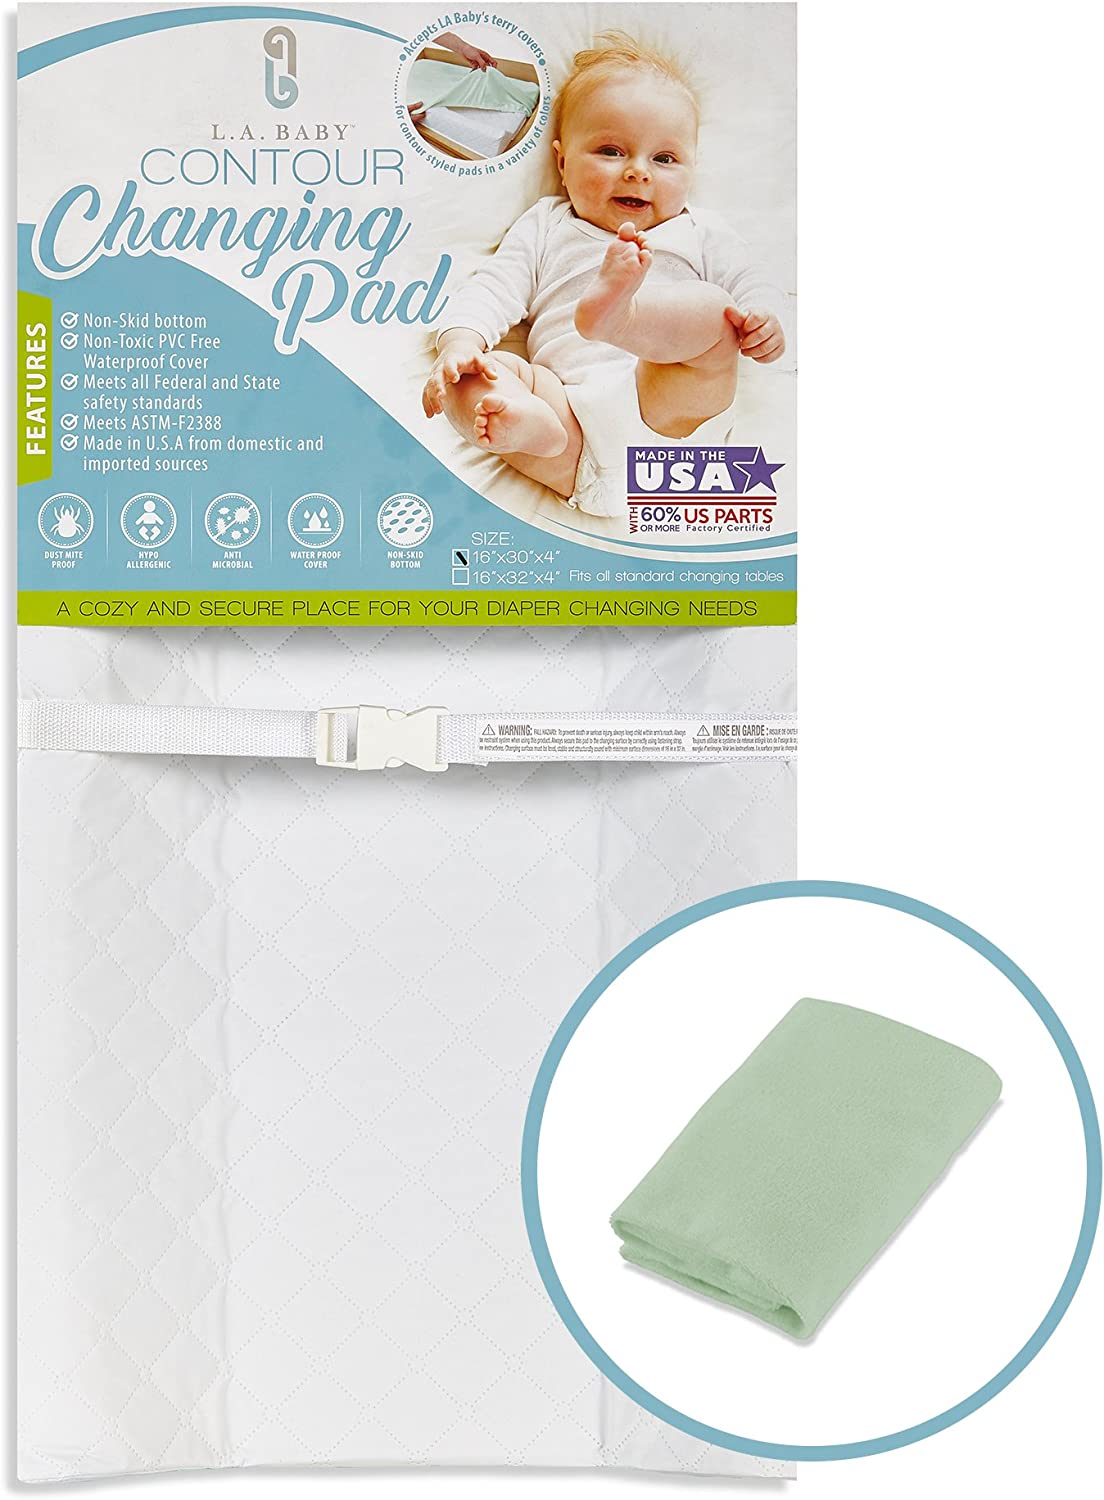 LA Baby Combo Pack with Contour Changing Pad and Terry Cover, White/Mint, 32-Mint by LA Baby